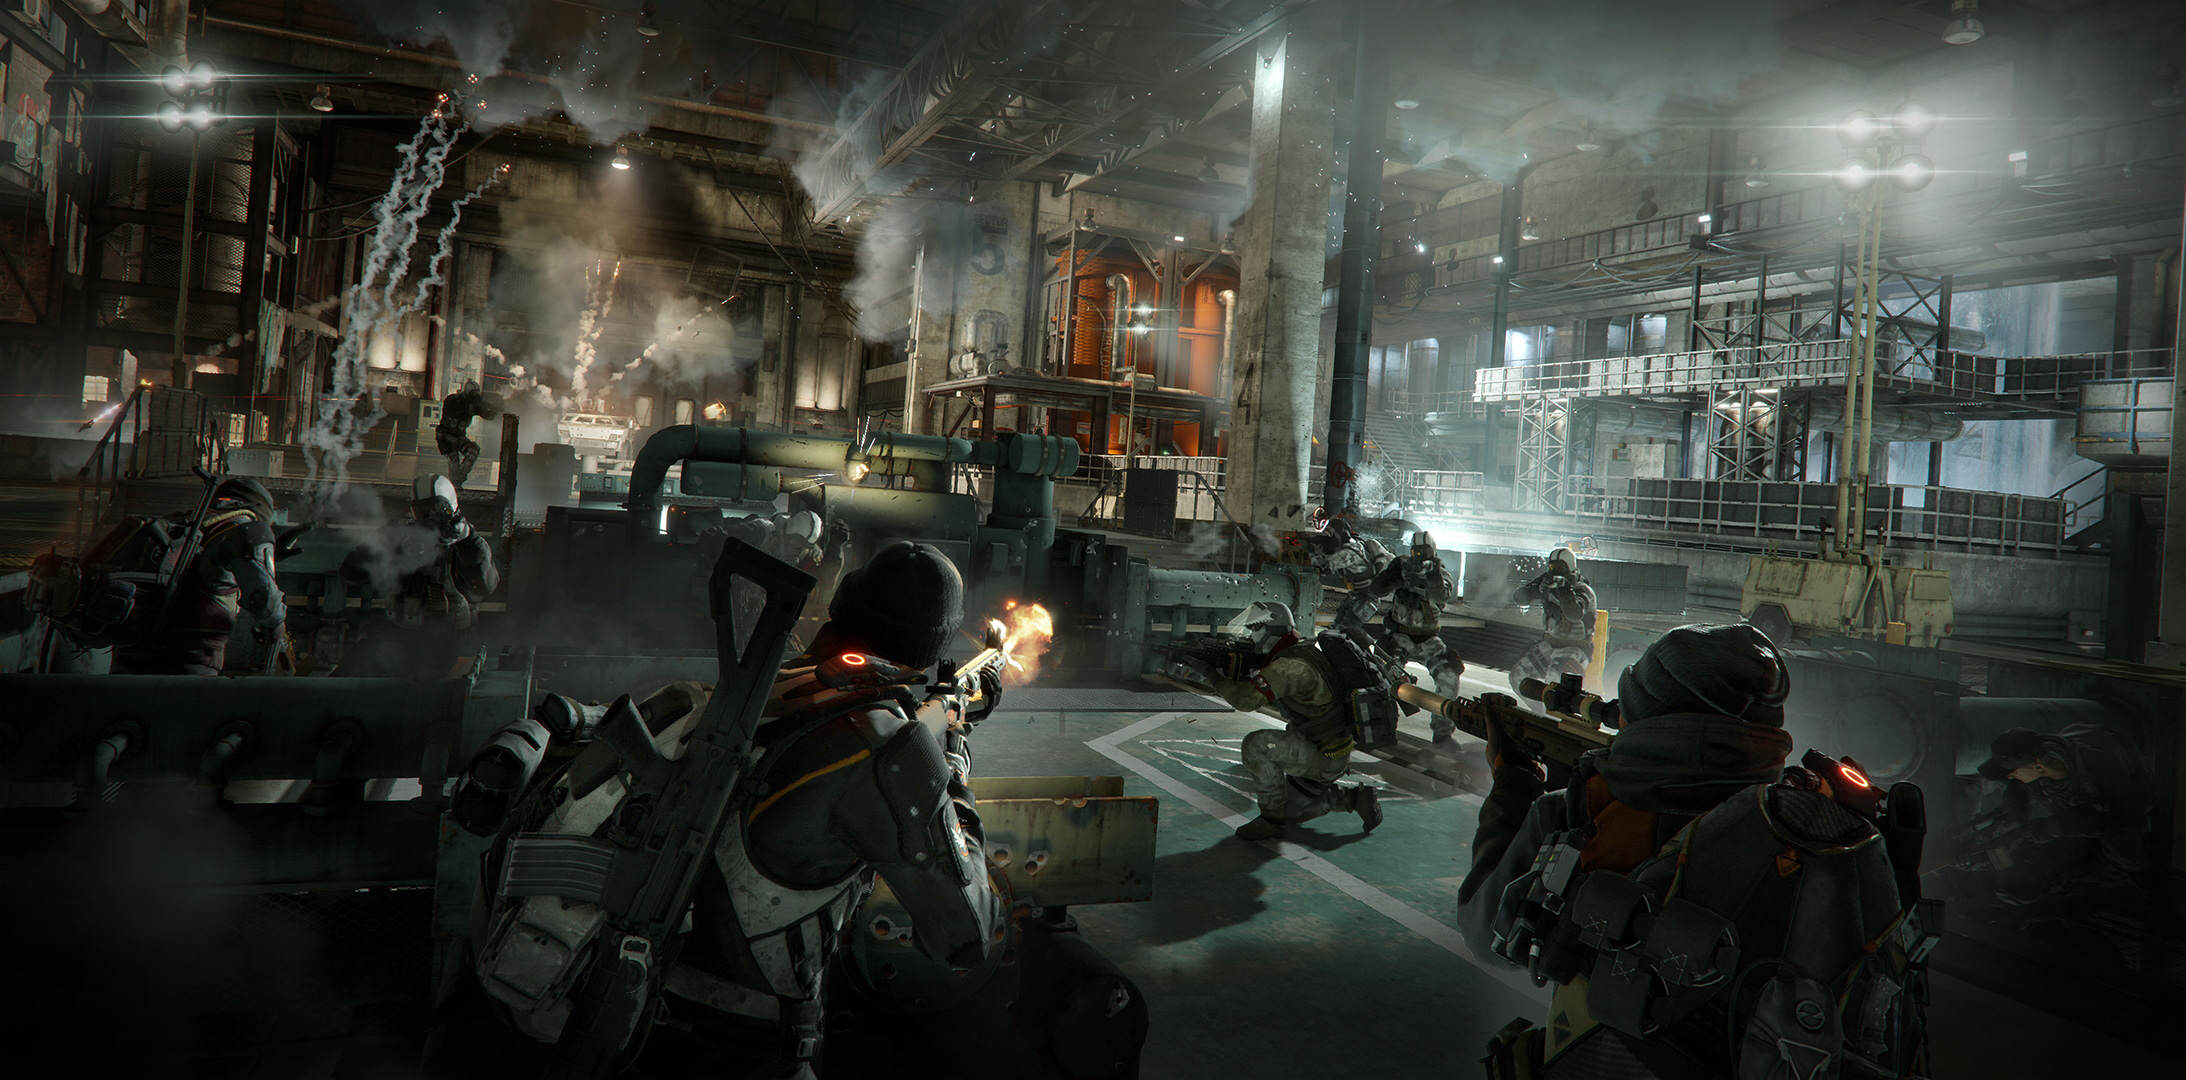 The Divisions Massive April Update Gets Launch Trailer tctd incursions action